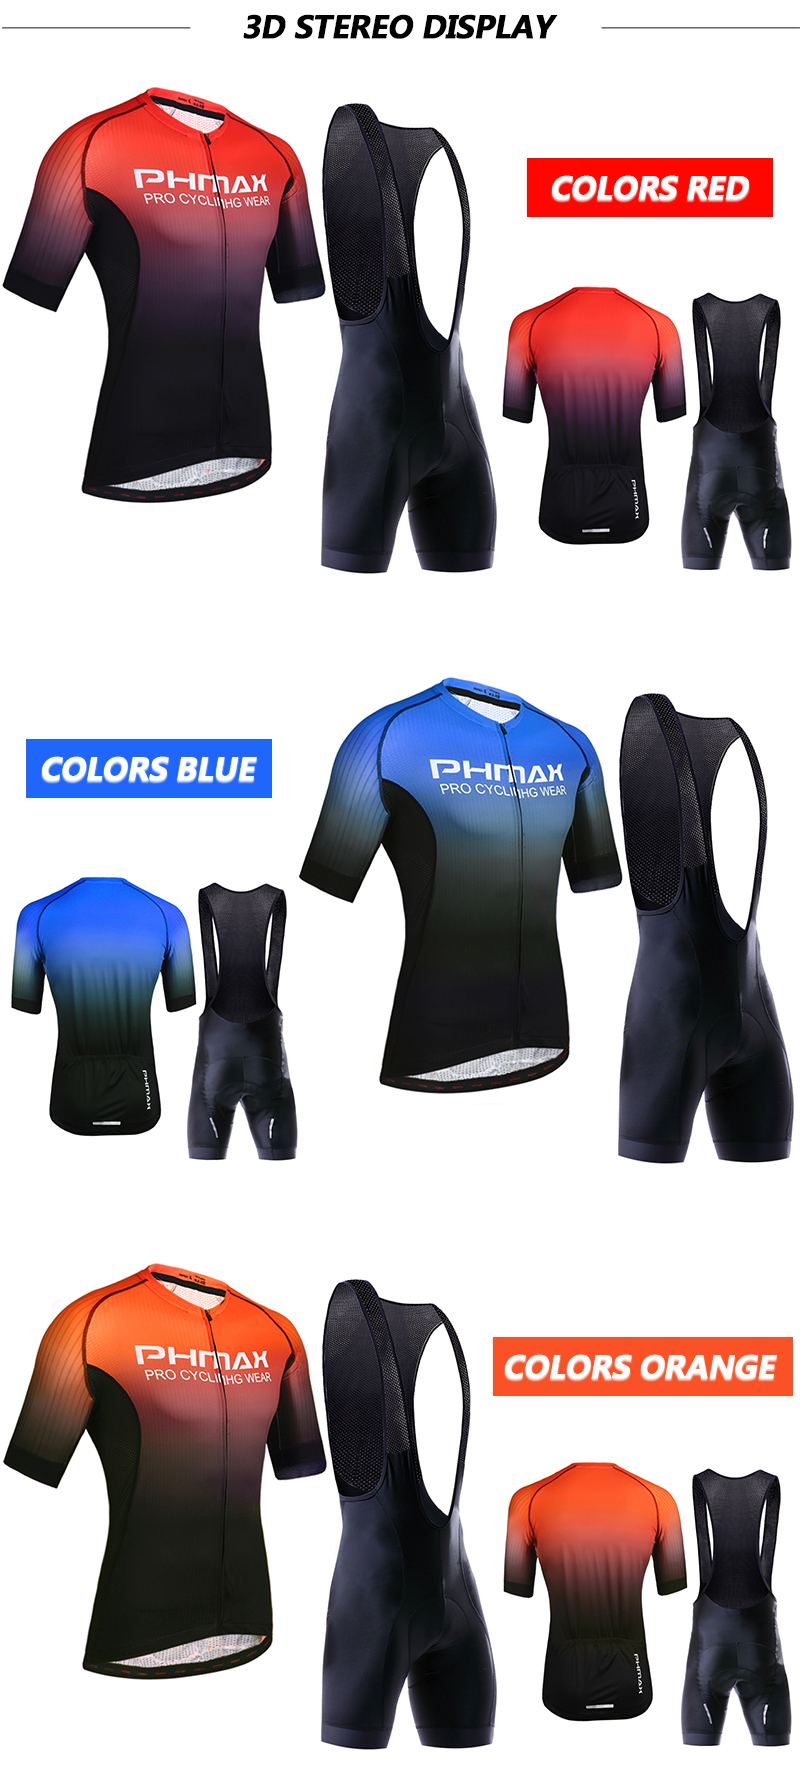 HTB1sBtvbL1G3KVjSZFkq6yK4XXam PHMAX Pro Cycling Clothing Men Cycling Set Bike Clothes Breathable Anti UV Bicycle Wear Short Sleeve Cycling Jersey Set For Mans